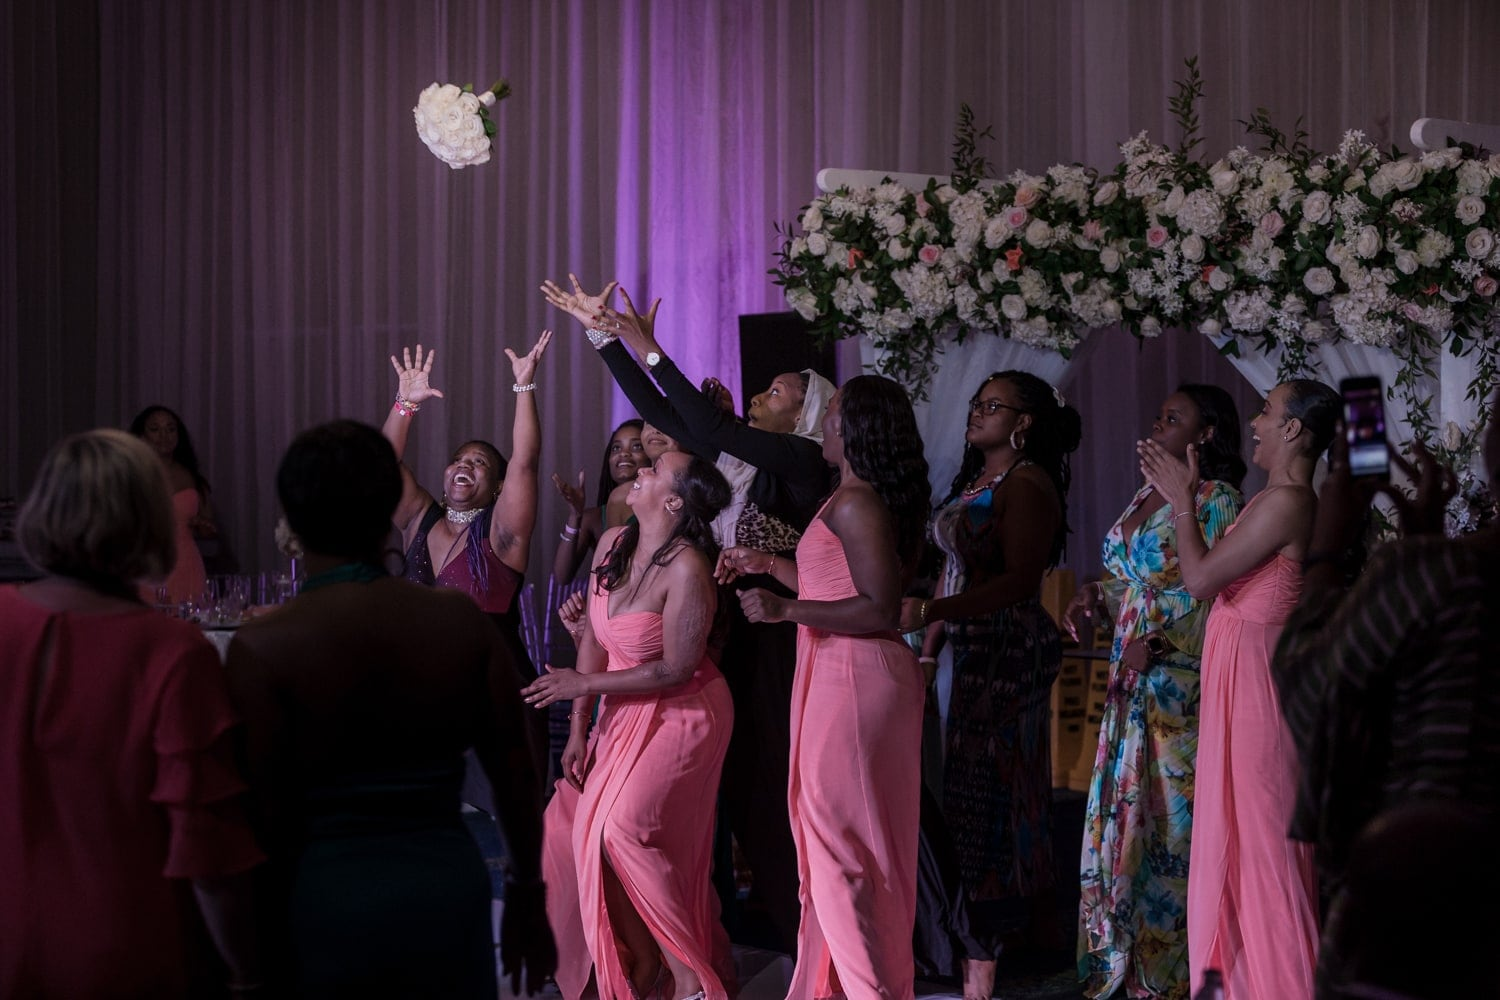 Bridesmaids jostling for position to catch the bridal bouquet.